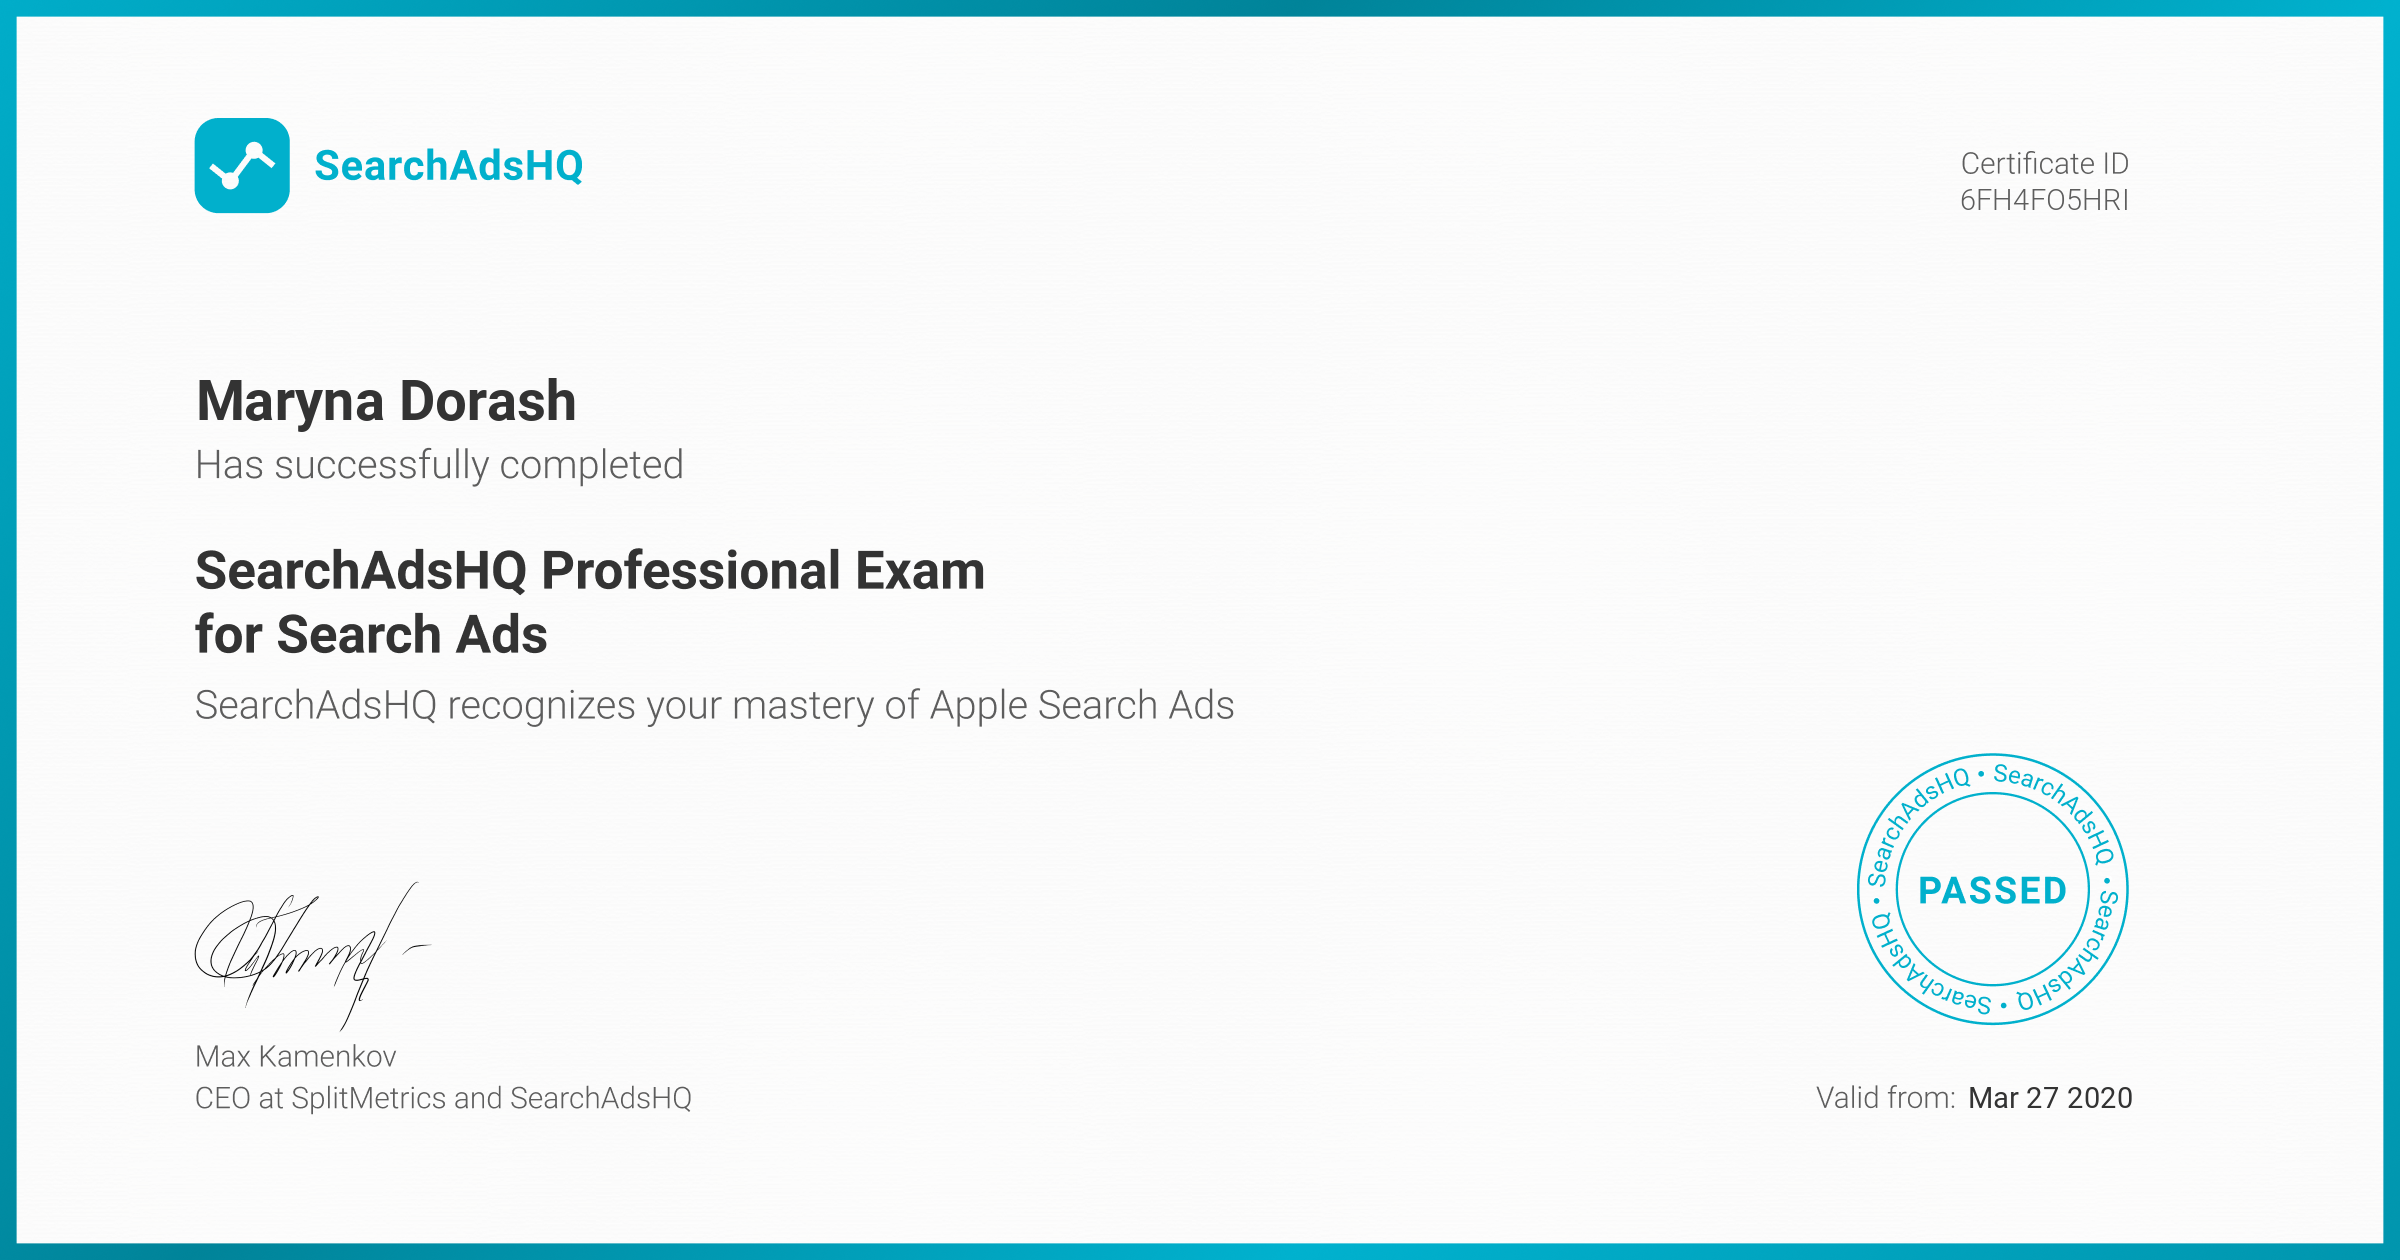 Certificate for Maryna Dorash | SearchAdsHQ Professional Exam for Search Ads